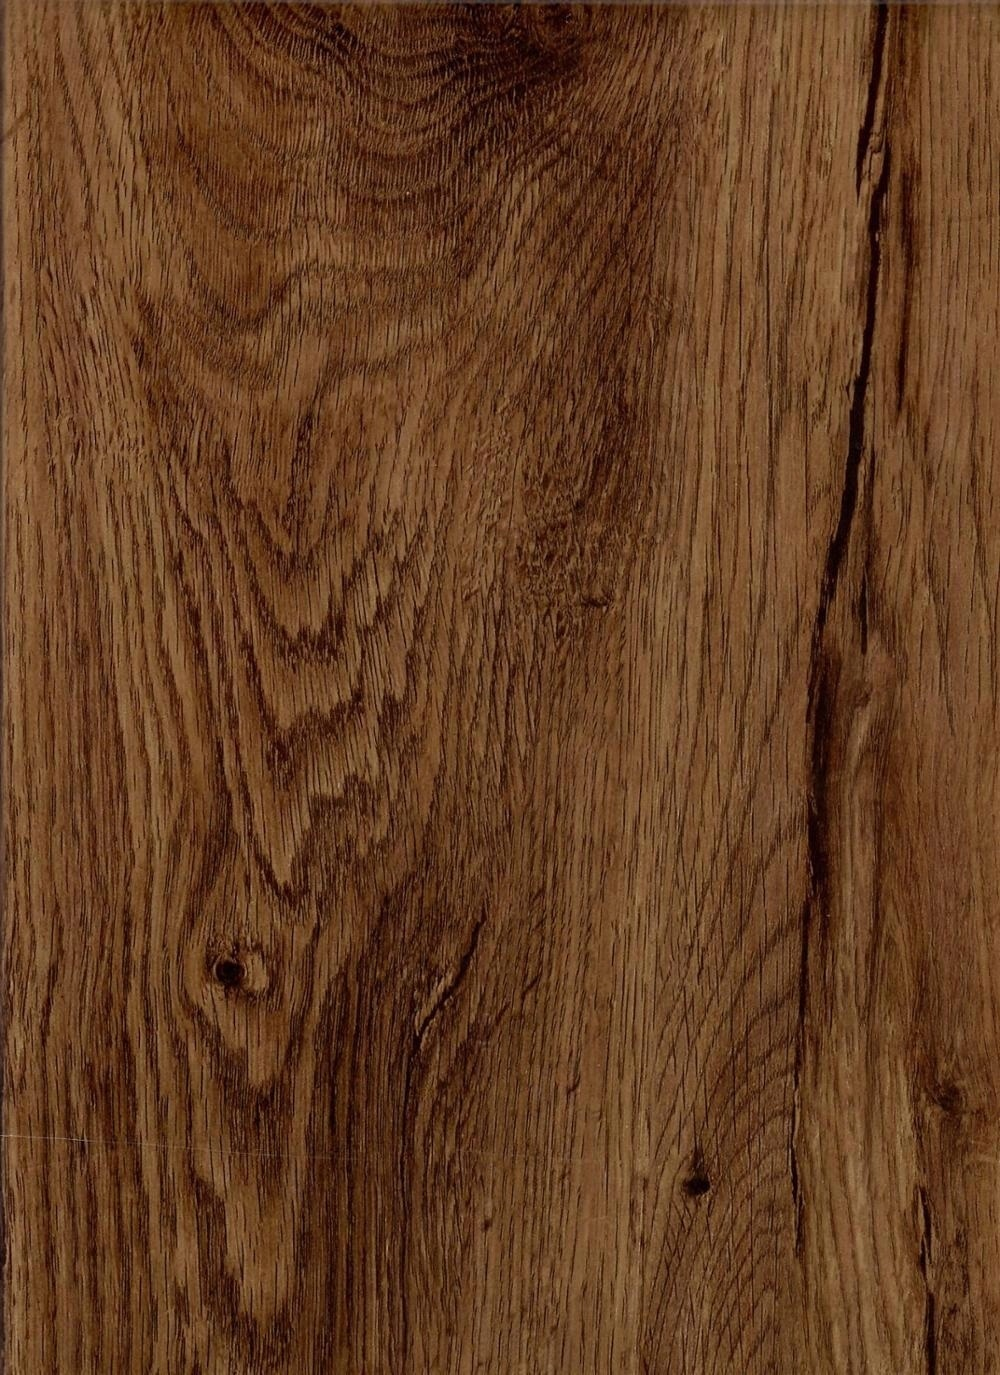 Laminate Laminated Flooring Spc With Waterproof Click Lock Installation System Stone Polymer Composite Floors Looks Like Wood